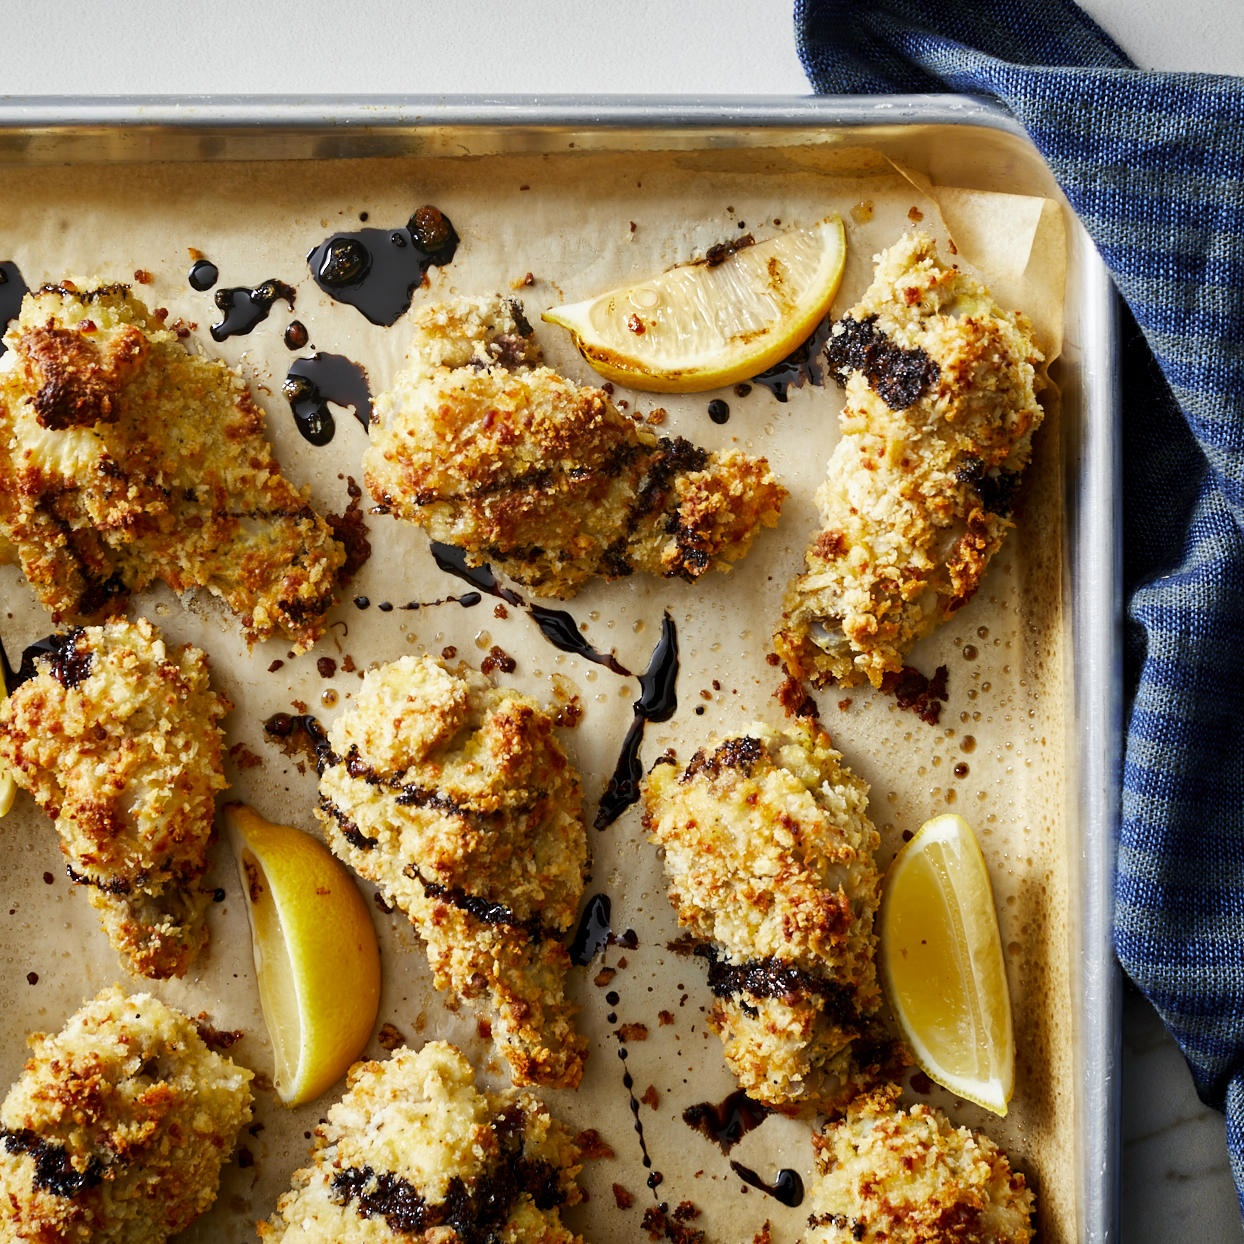 Forget the fryer--these baked garlic-Parmesan chicken wings get a crispy coating (without tons of oil) from panko breadcrumbs combined with grated Parmesan cheese. A drizzle of balsamic vinegar glaze gives this healthy appetizer a sweet and tangy finishing note. Source: EatingWell.com, December 2019